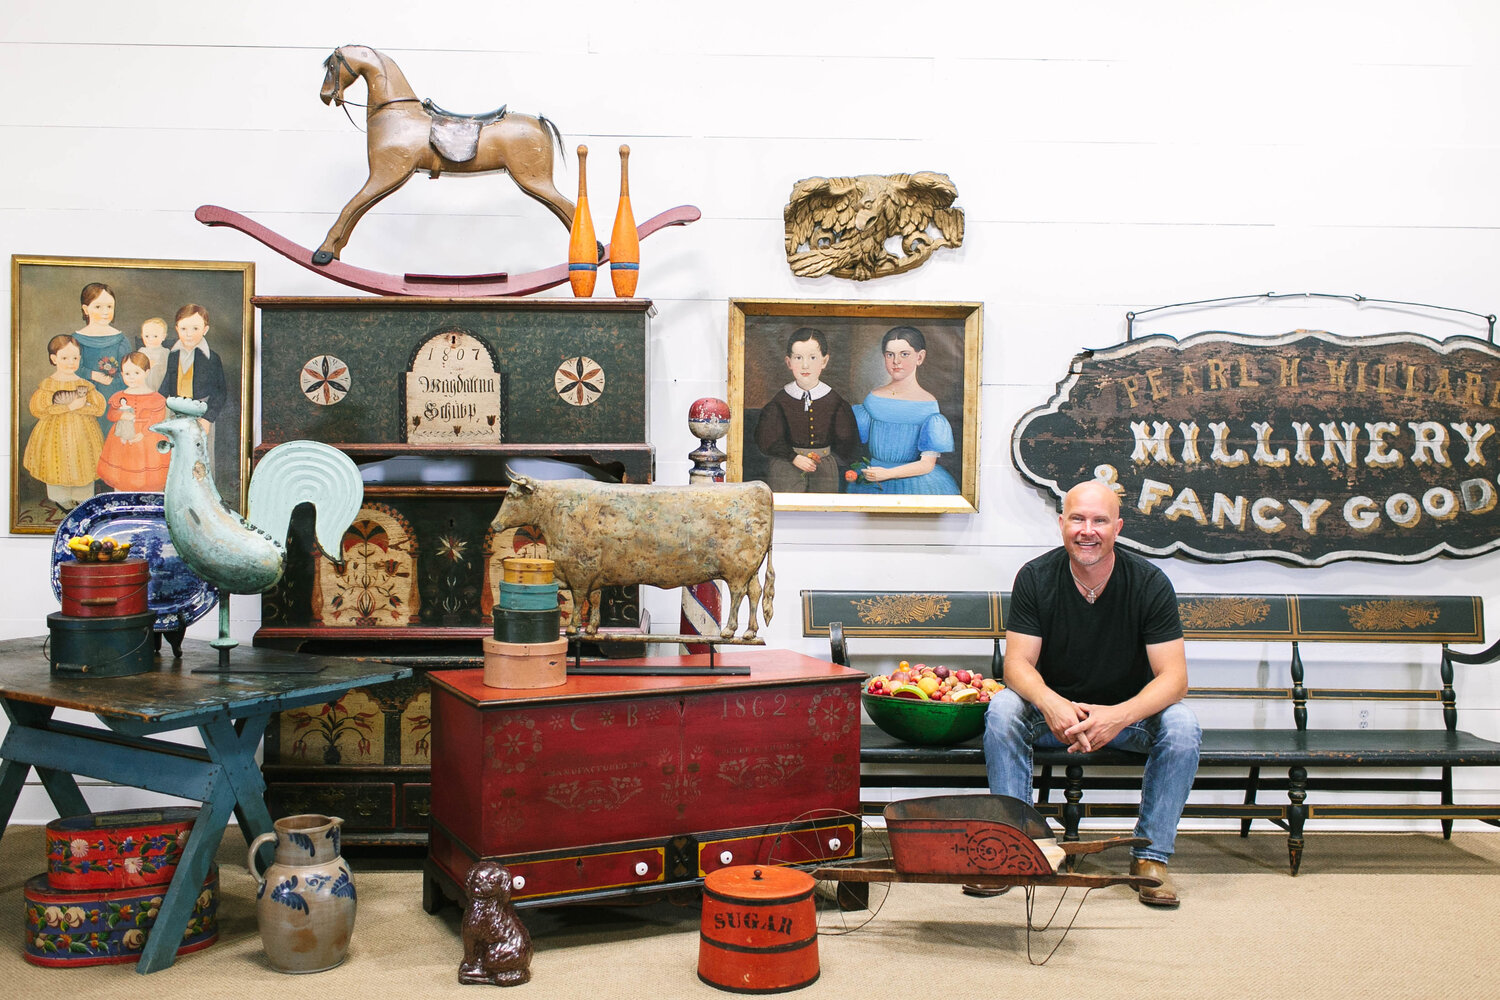 Bright Star Antiques Co